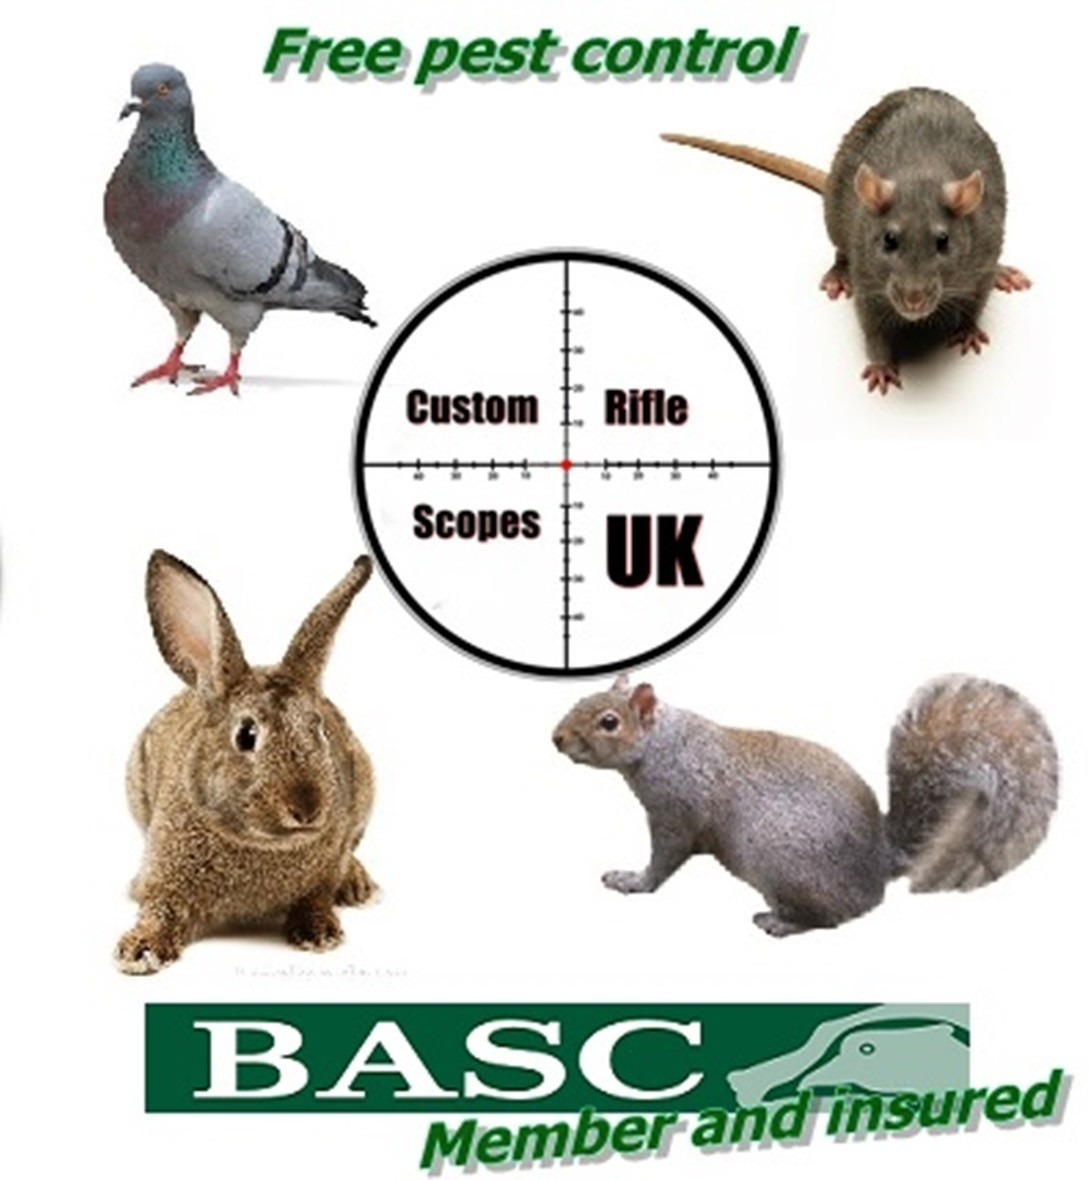 Free Vermin control & free security done on farm land (East Kent area)